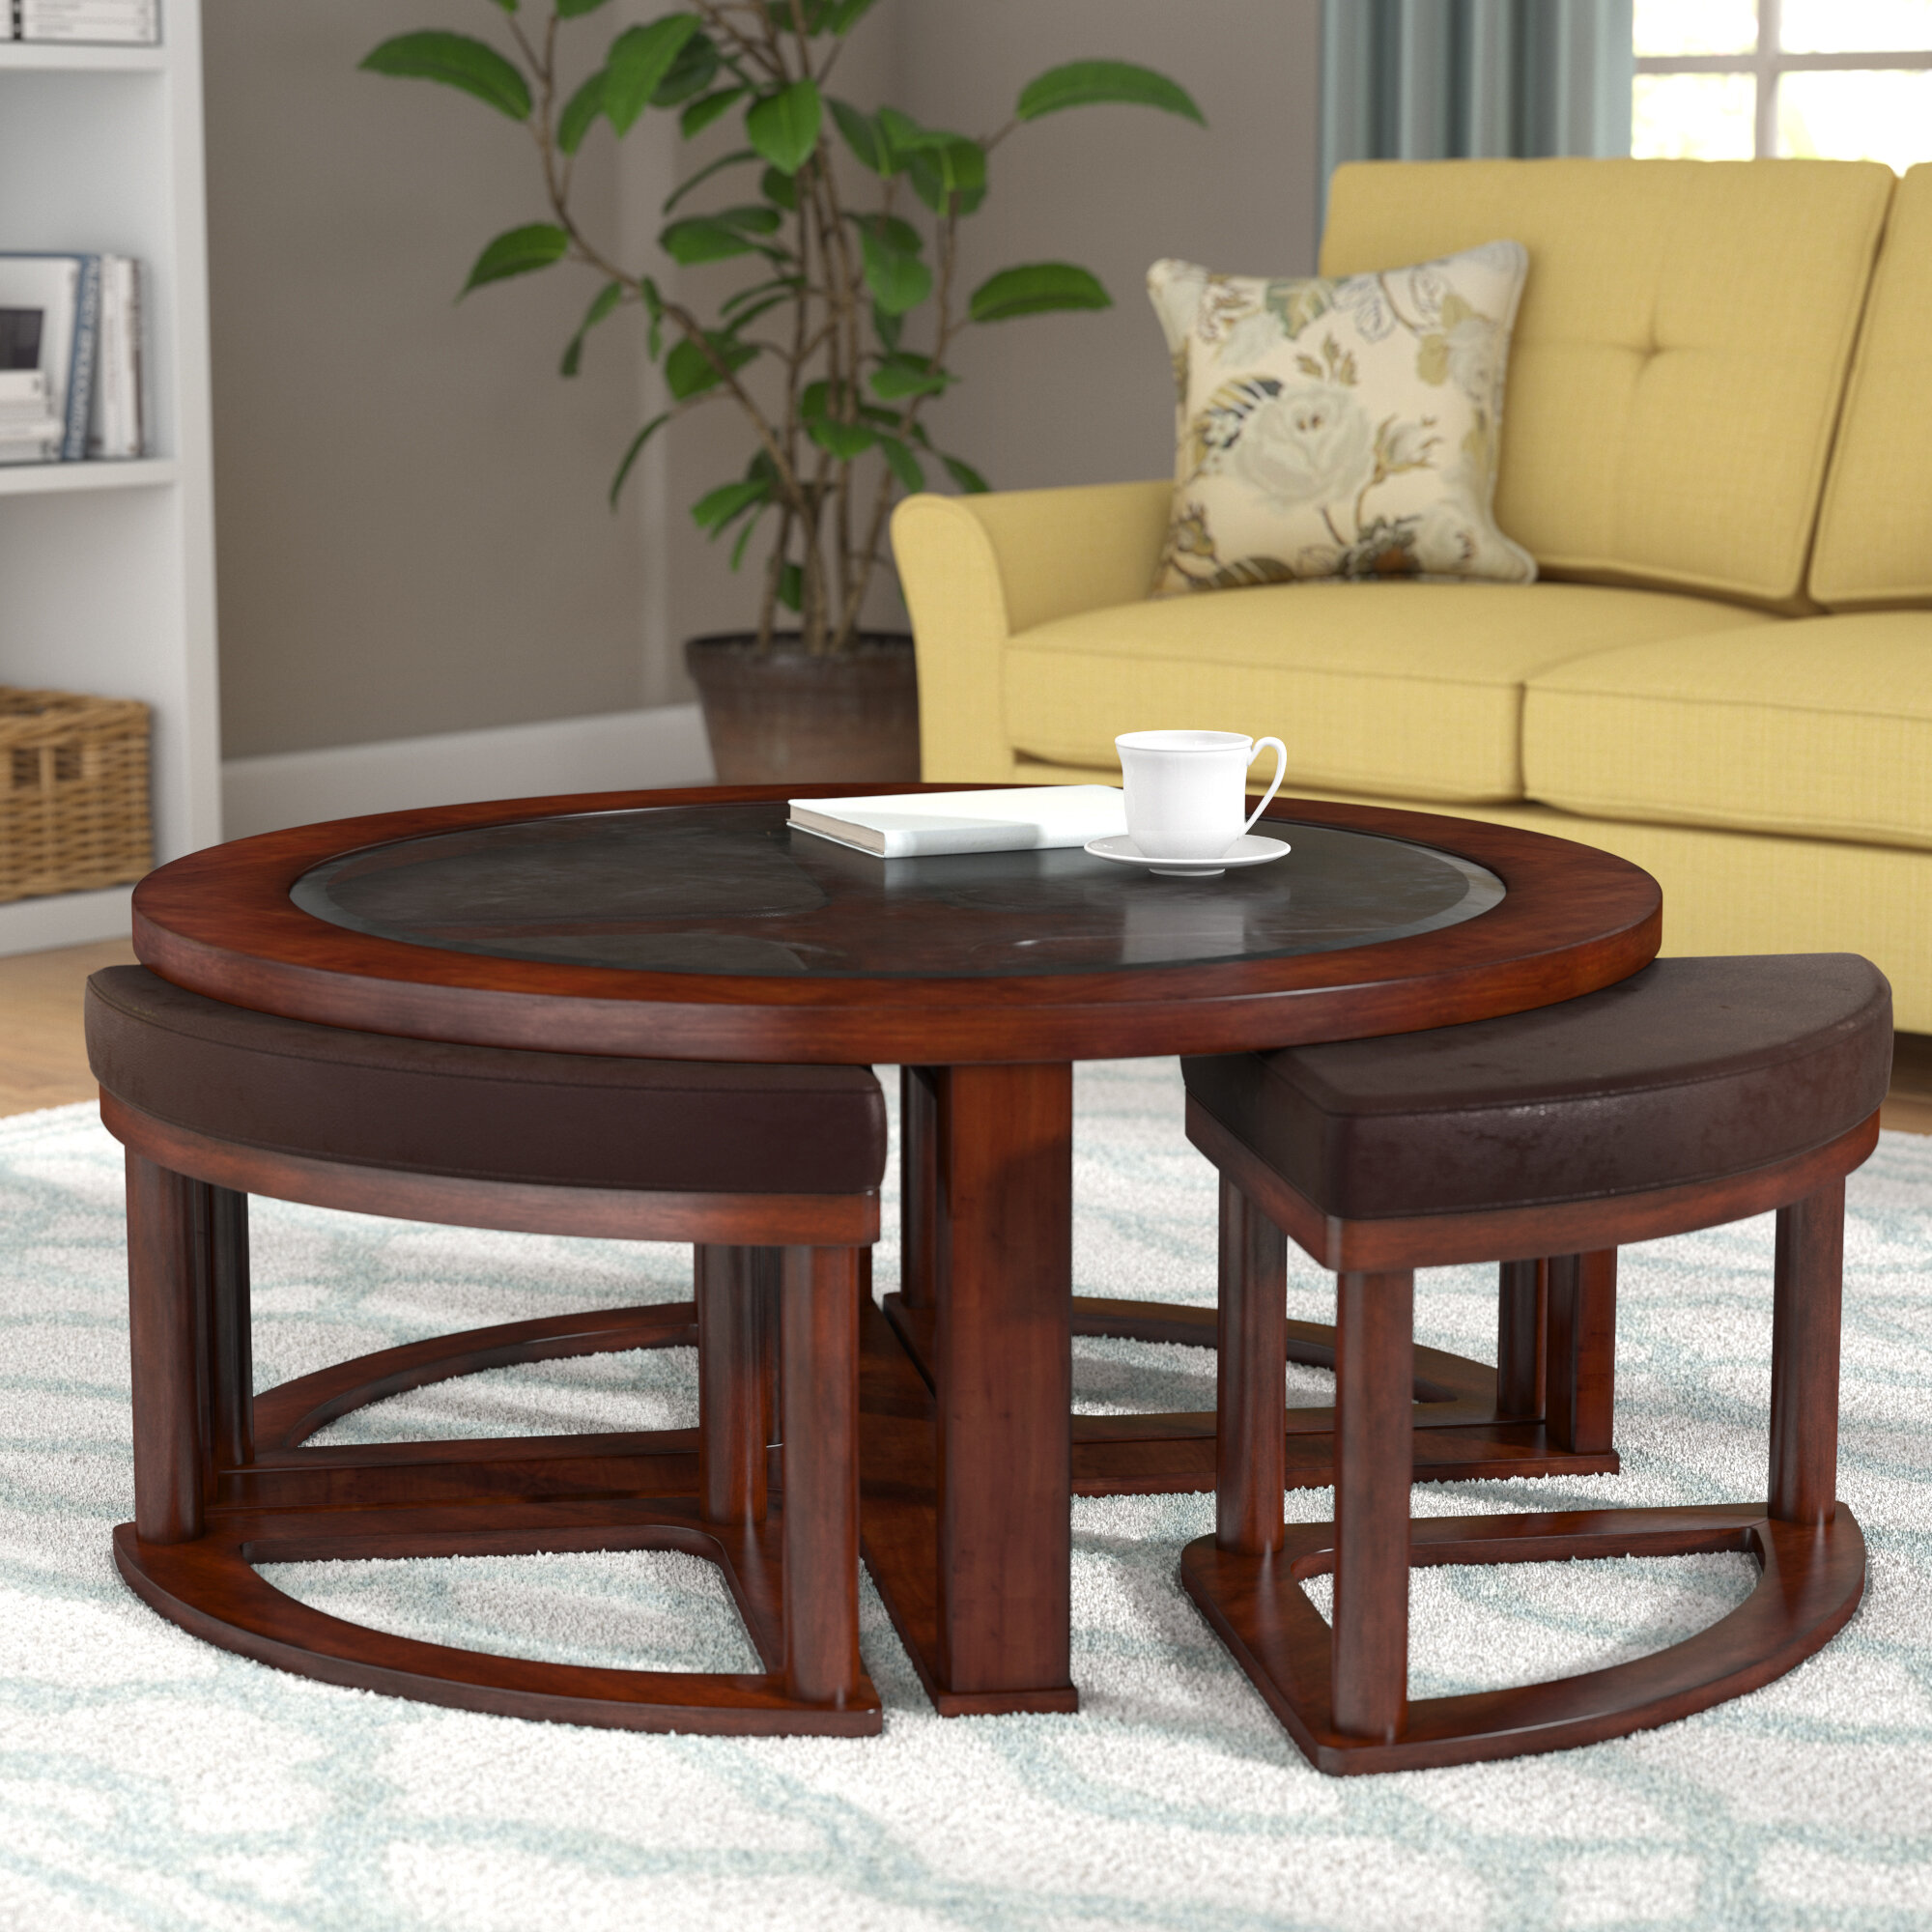 brick to furniture and coffee tables side hover table item room the with living stools zoom esmarina end product